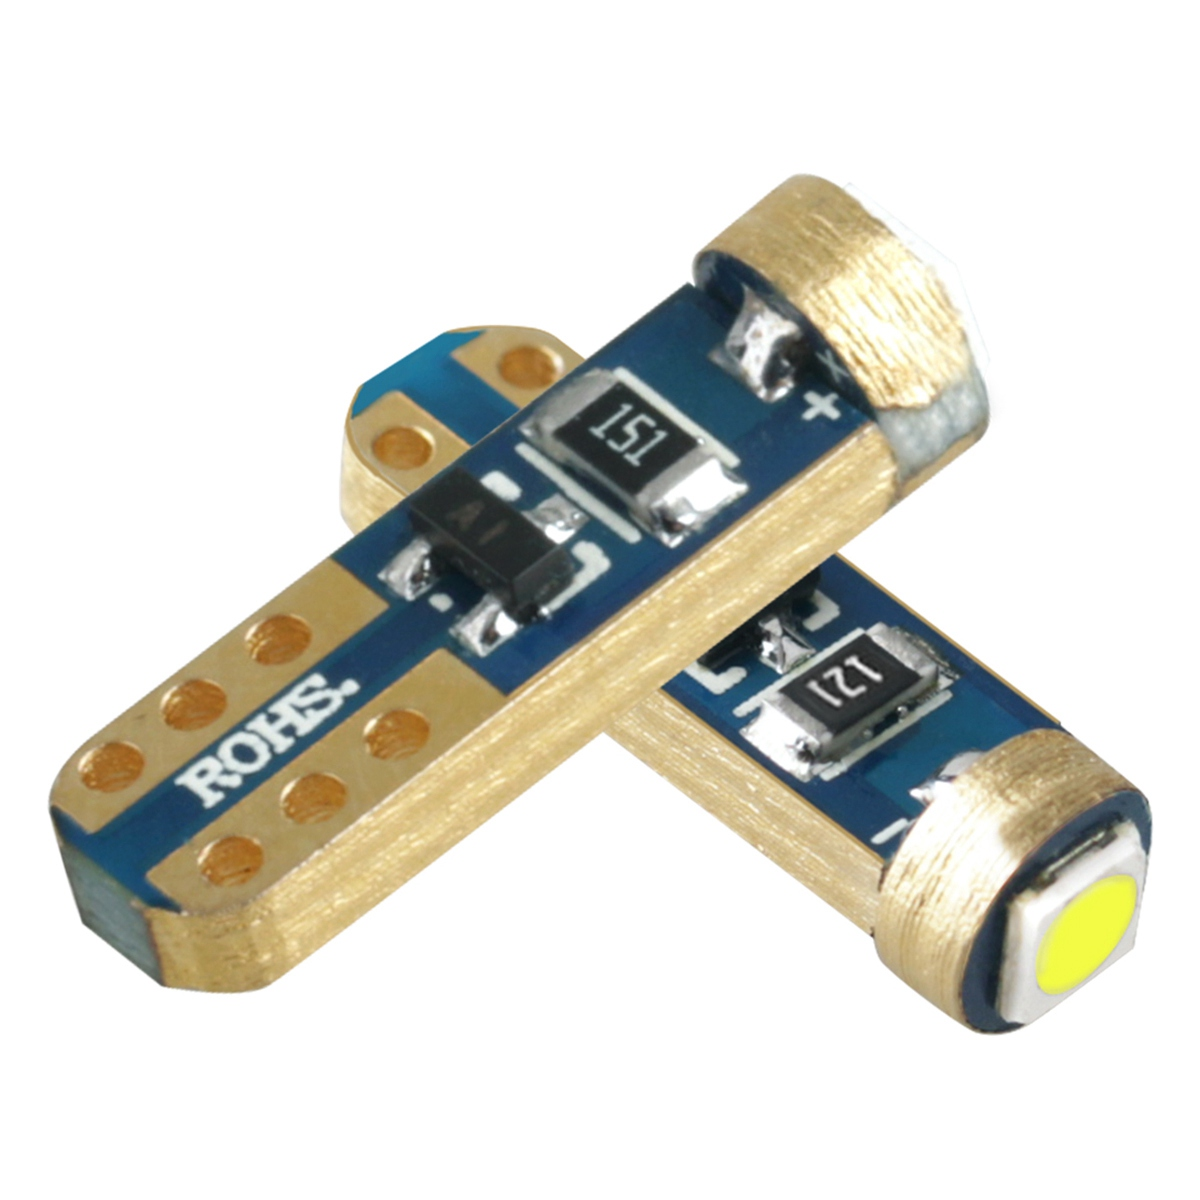 4Pcs Car Interior <font><b>T5</b></font> <font><b>Led</b></font> 1 Smd DC 12V <font><b>24V</b></font> Bulbs Light Ceramic Dashboard Gauge Instrument Ceramic Car Auto Side Wedge Lamp image